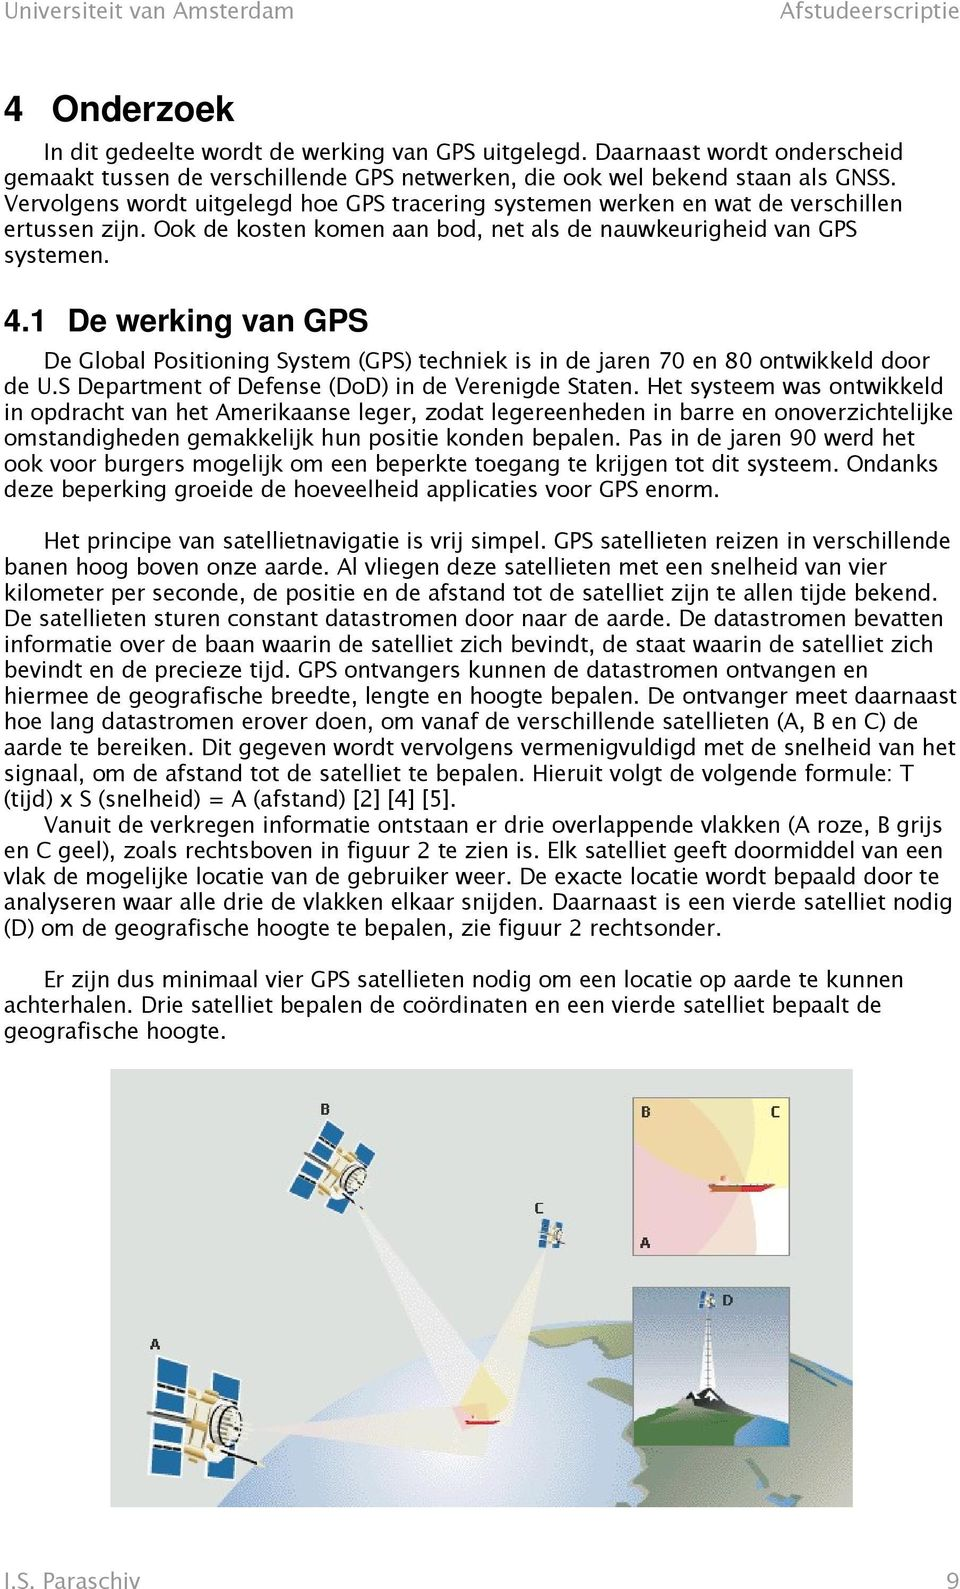 1 De werking van GPS De Global Positioning System (GPS) techniek is in de jaren 70 en 80 ontwikkeld door de U.S Department of Defense (DoD) in de Verenigde Staten.